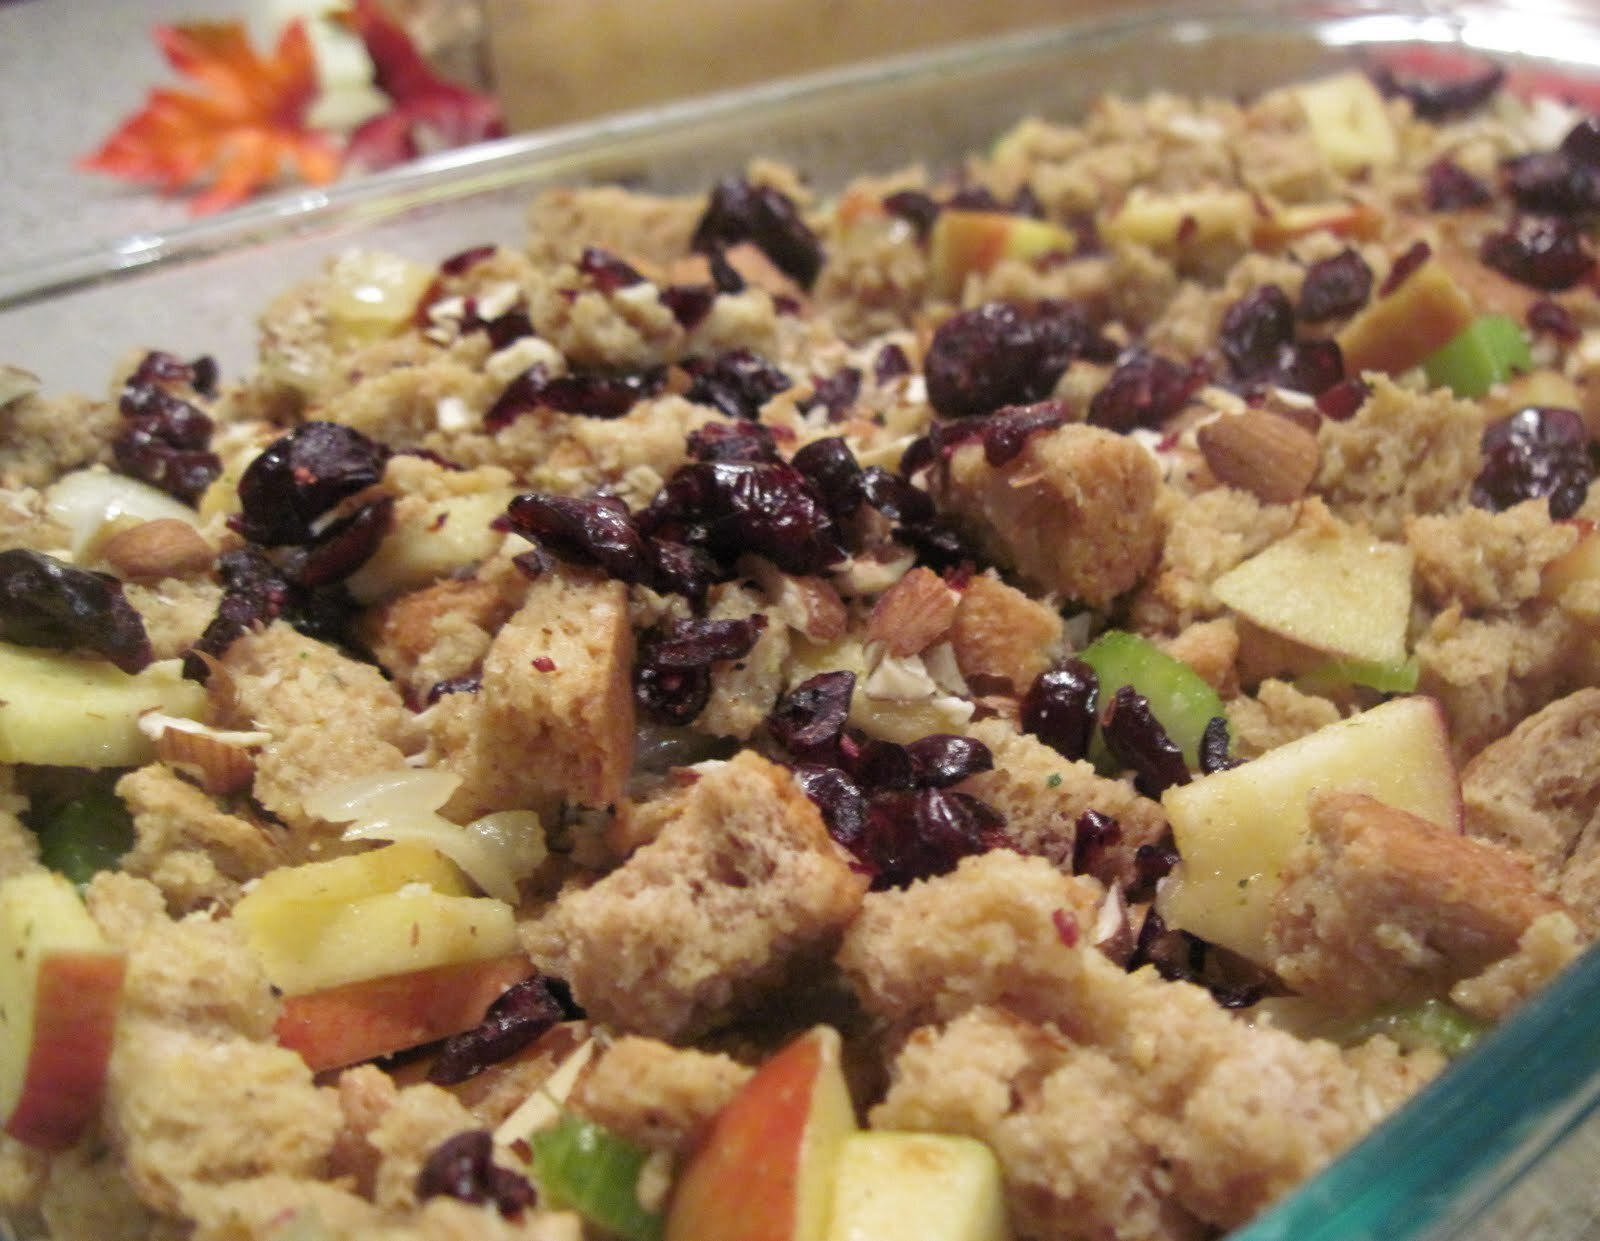 Homemade Cranberry and Apple Stuffing